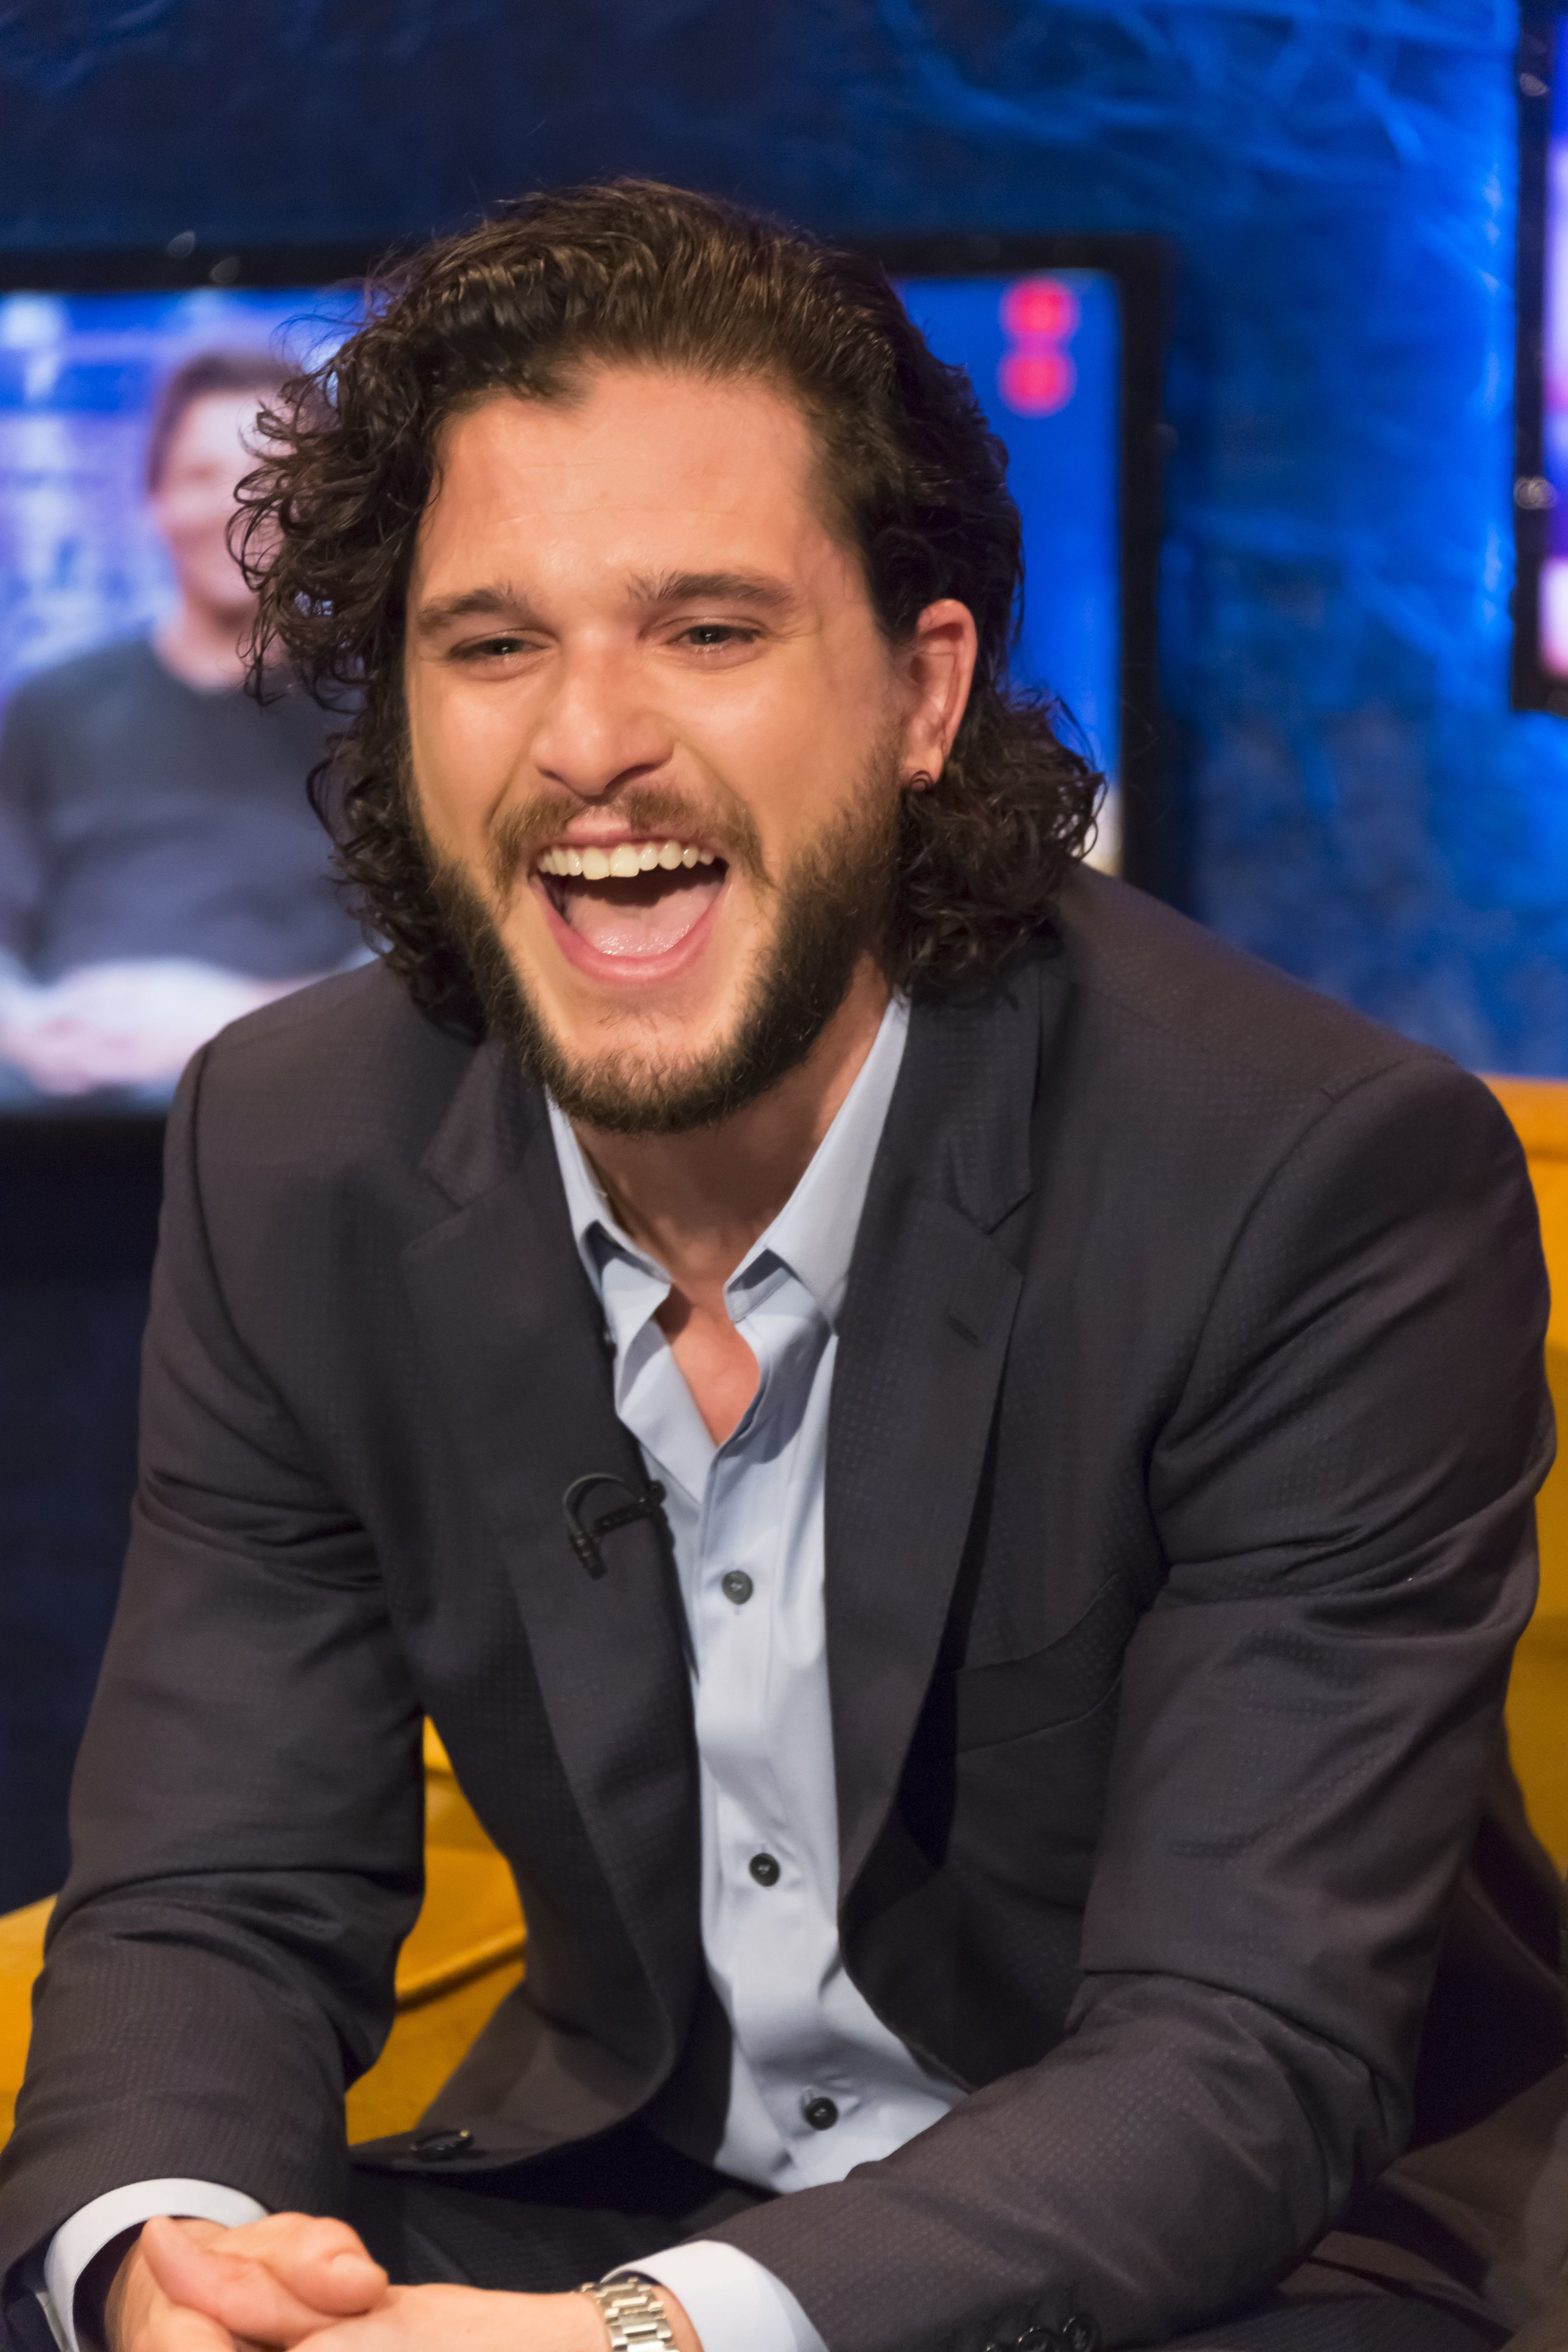 Kit Harington Claims He 'Blew His Load Early' During Proposal To Rose Leslie (No, Not Like